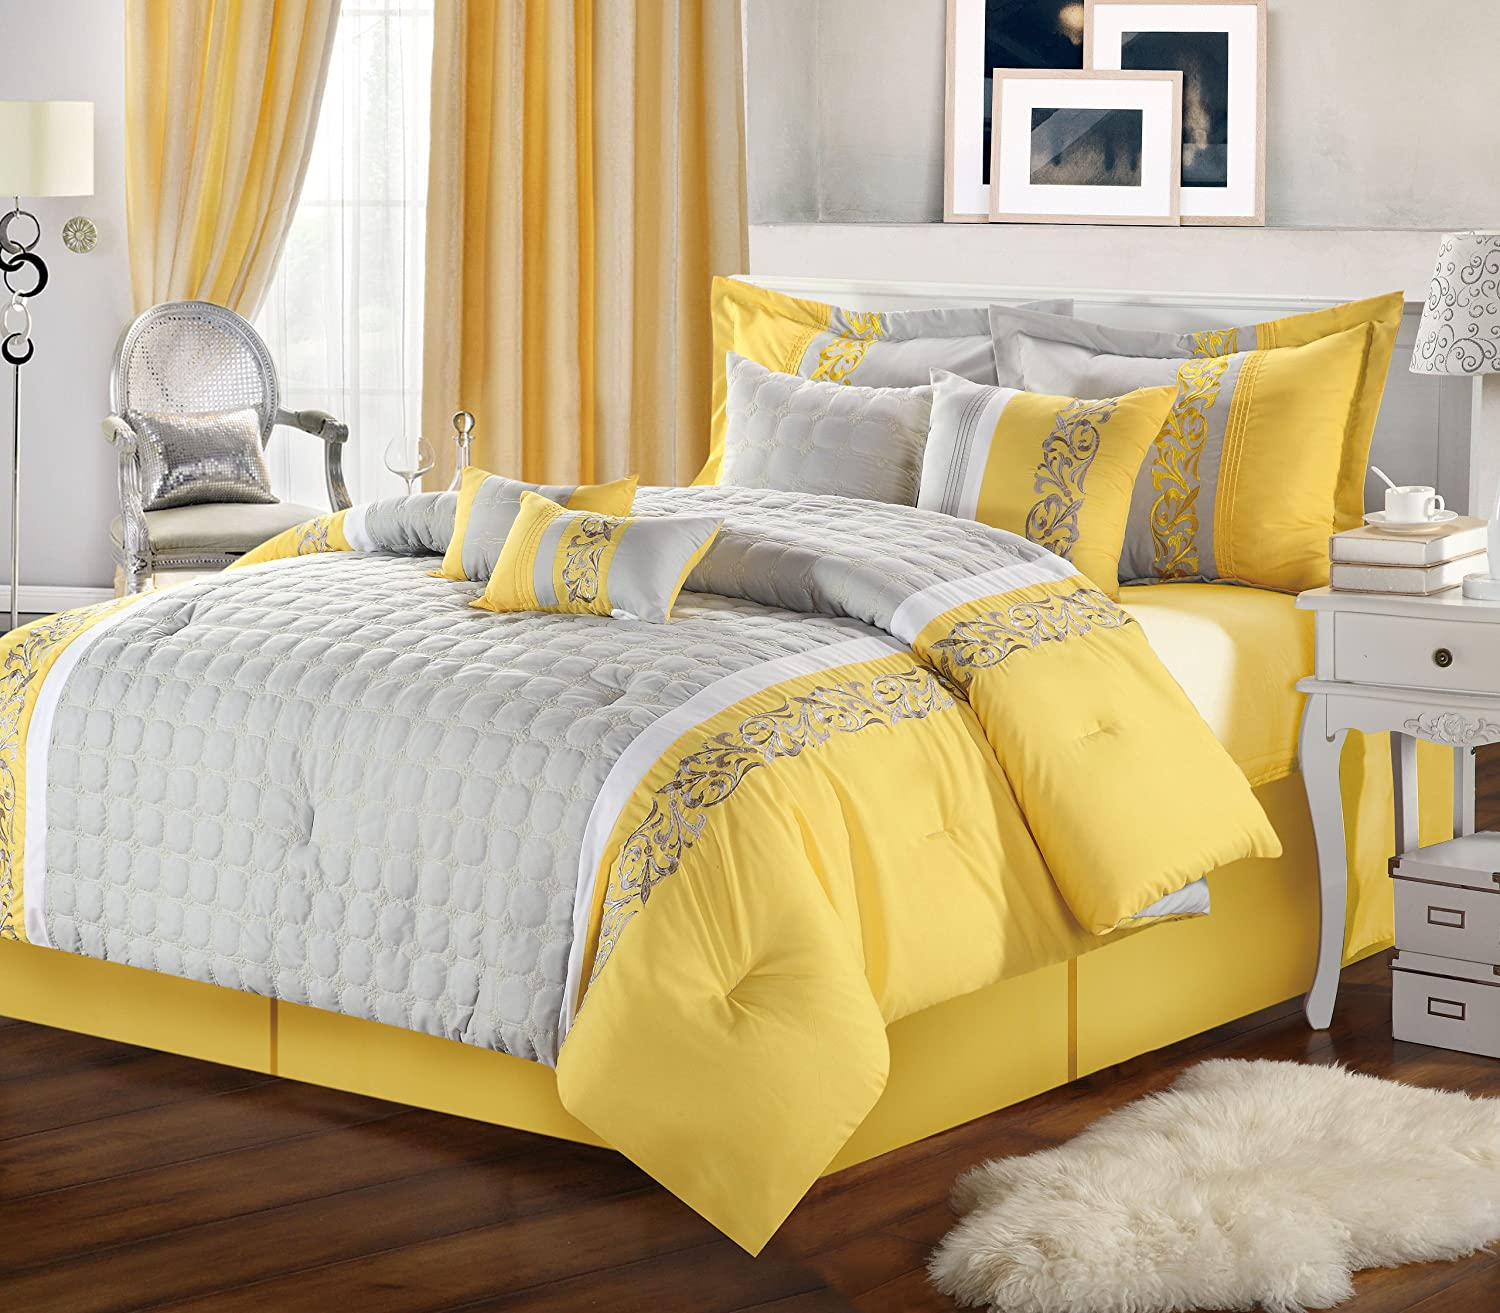 Comforter Set - Yellow Set - Yellow Bed Sets